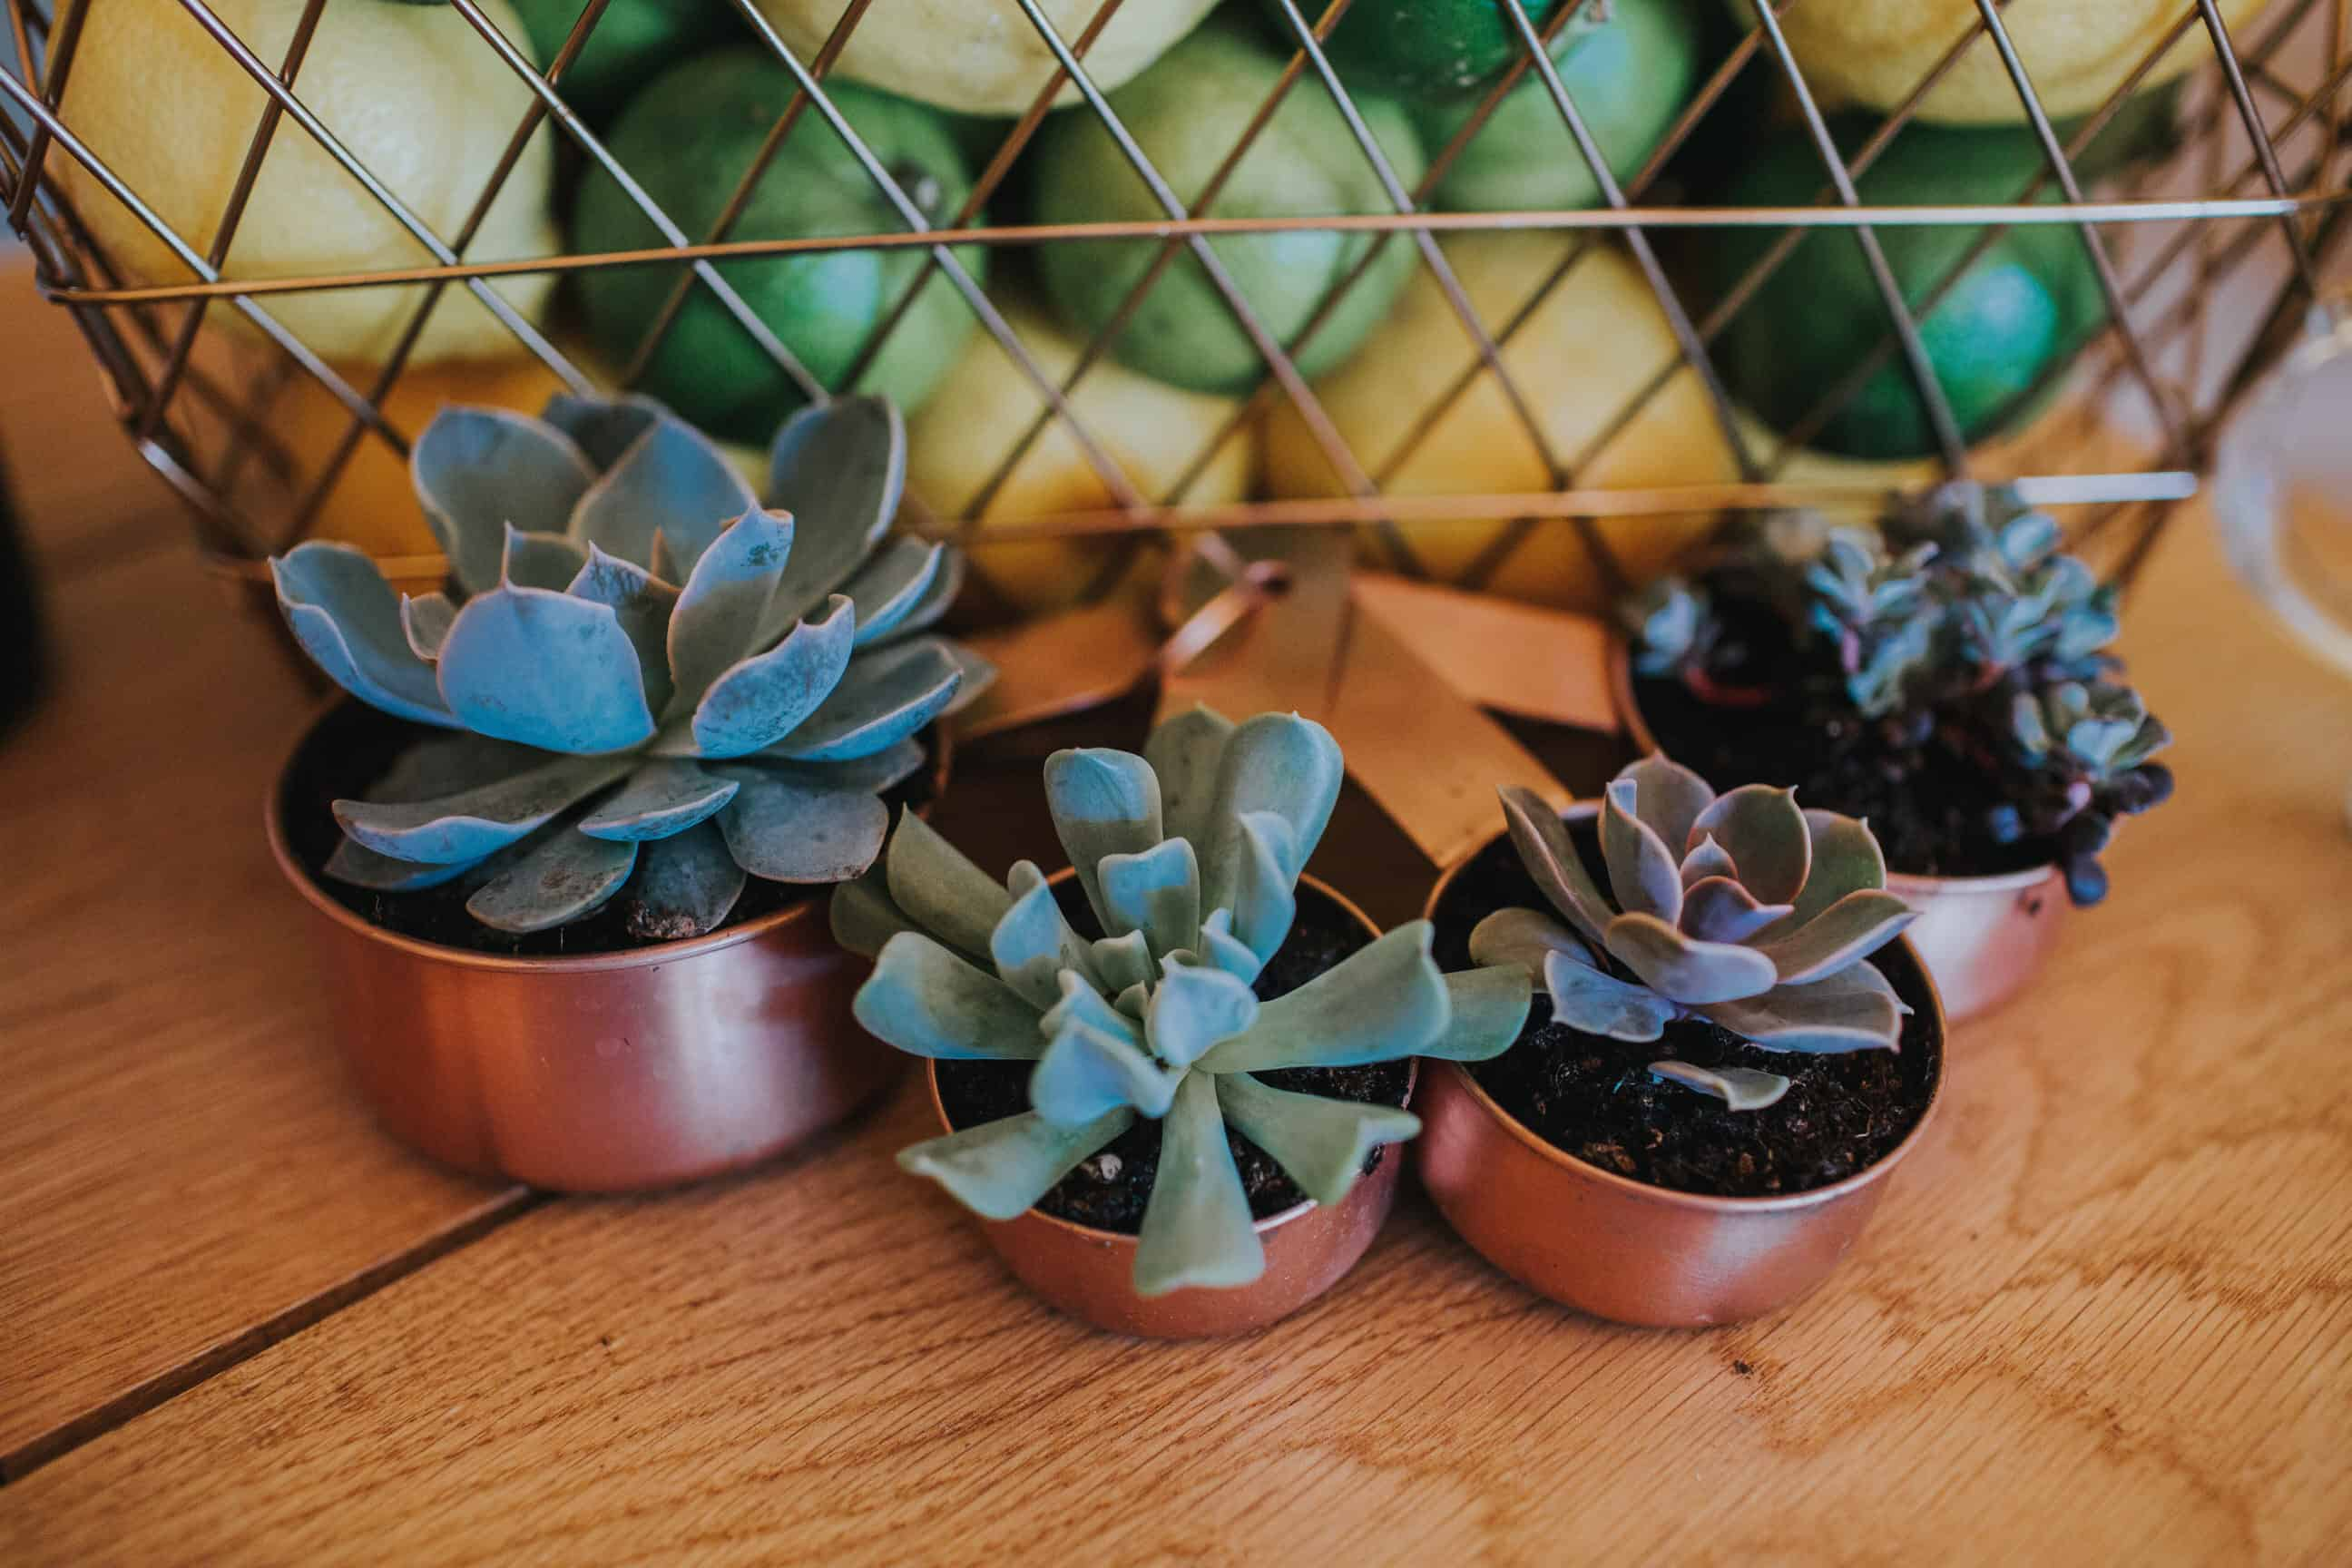 Copper Pots & suculents Emily Wisher Artisan florist -by Sami Tipi captured by Ed Brown Photography